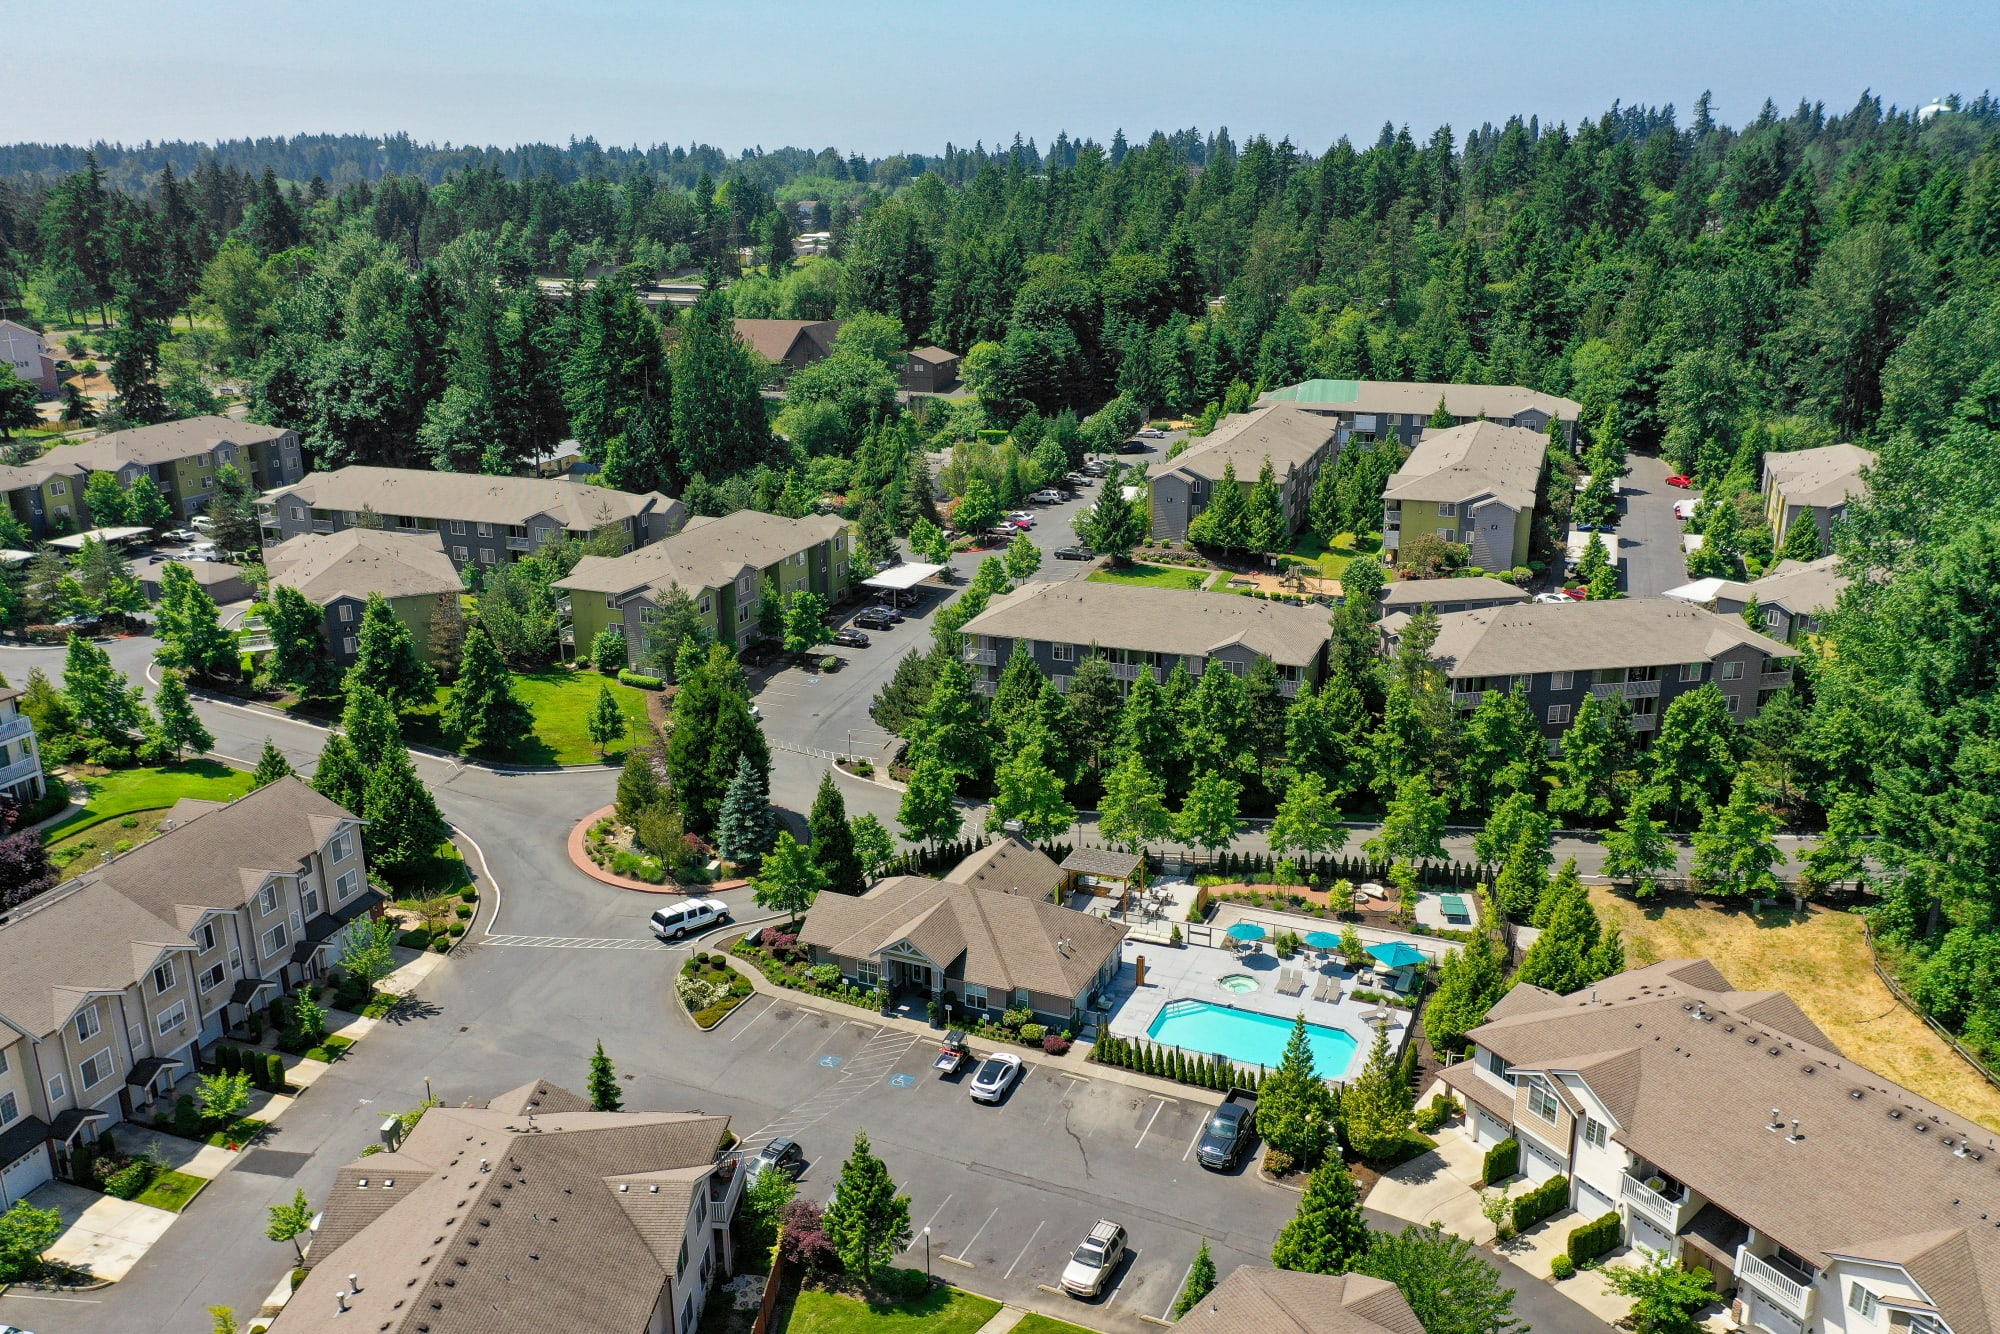 An aerial view of Brookside Village in Auburn, Washington